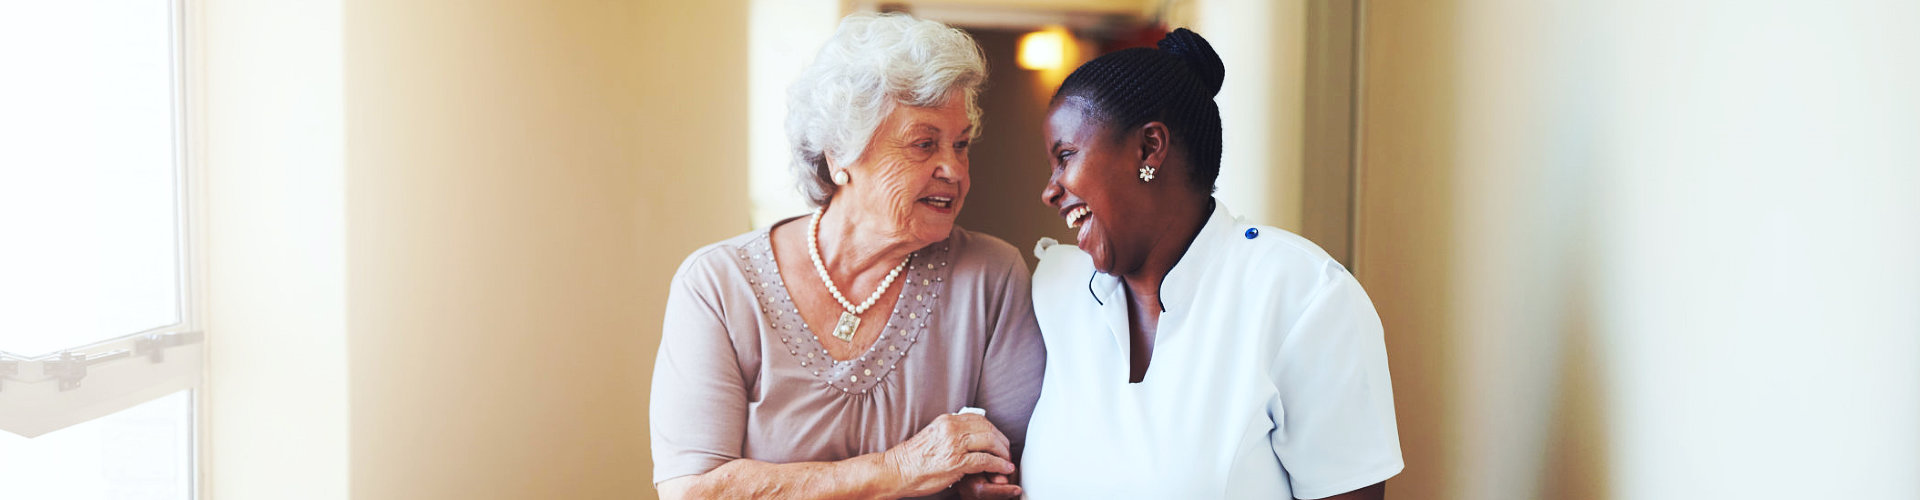 staff and elderly woman smiling to each other